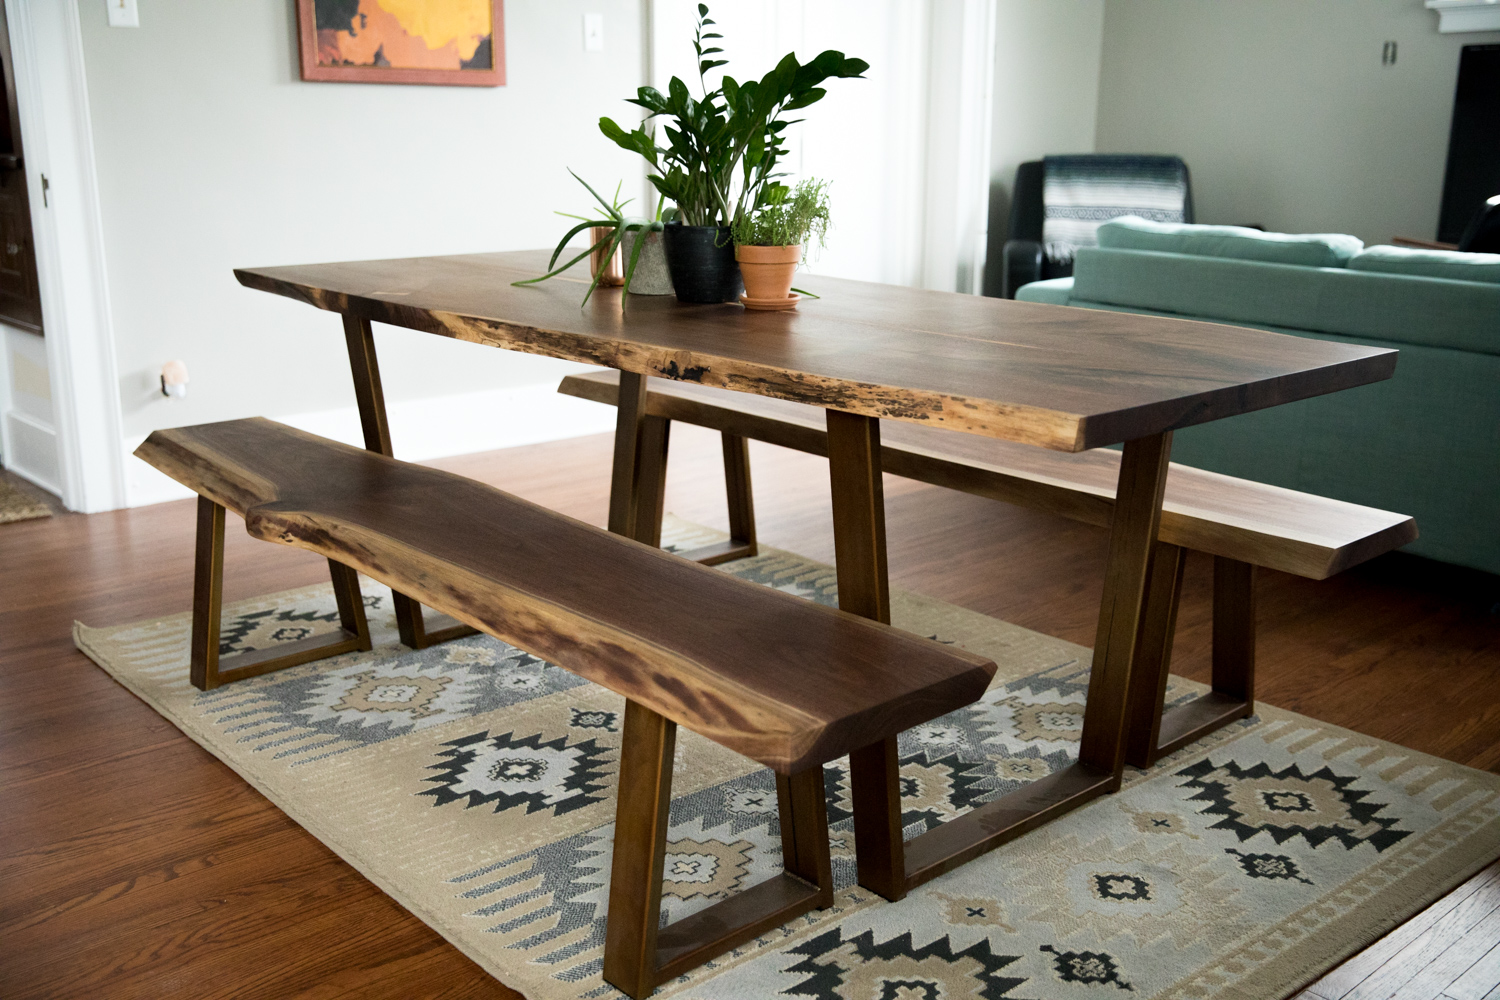 Big Tooth Co_Fort Wayne Indianapolis Woodworking _Walnut Dining Table (38 of 51).jpg